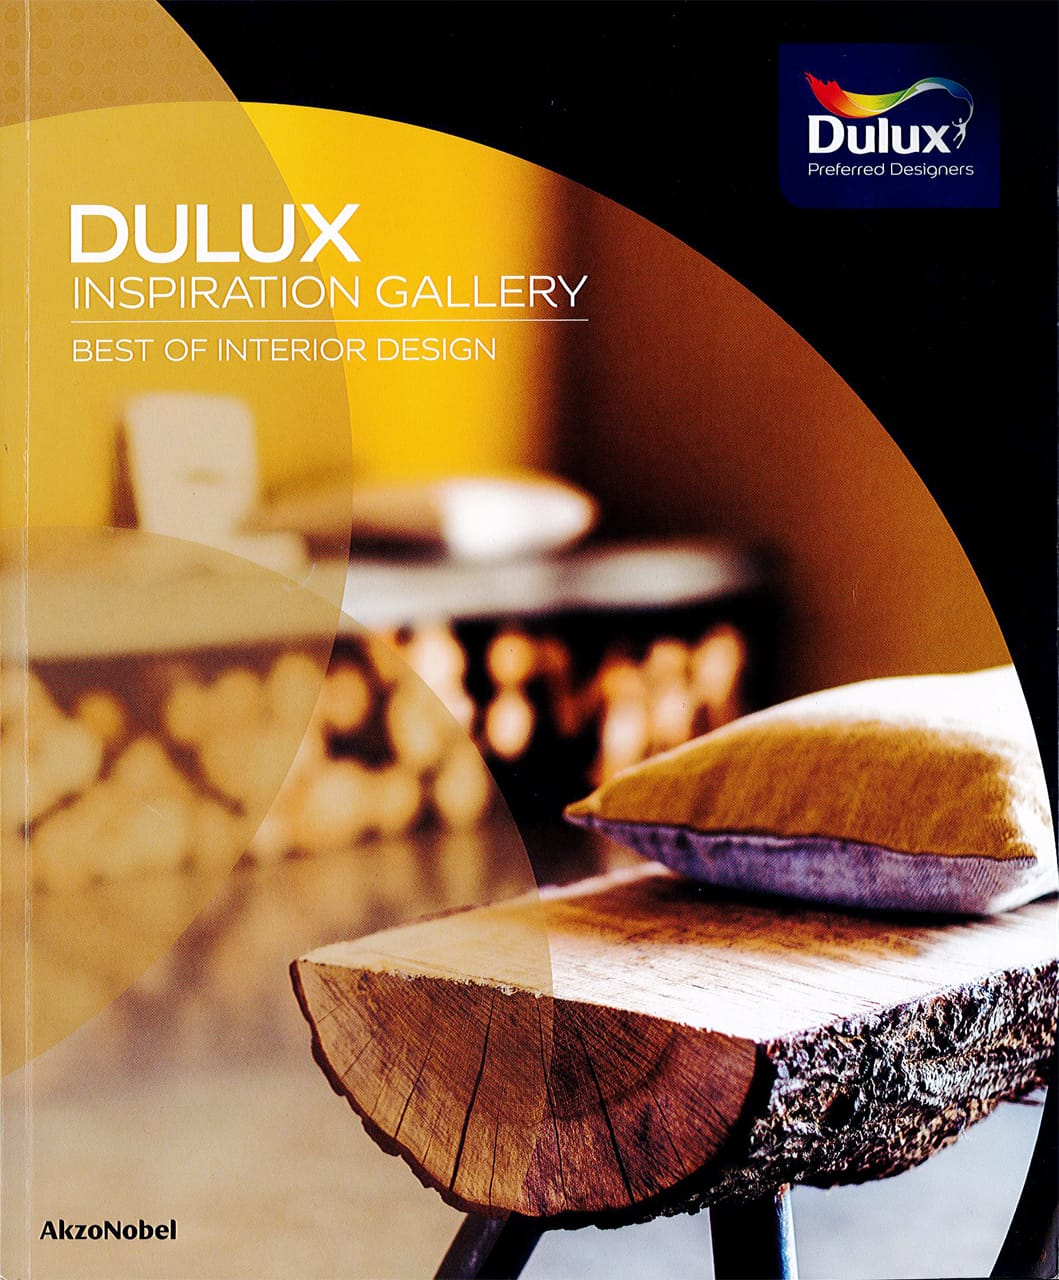 Dulux Inspiration Gallery - Best of Interior Design